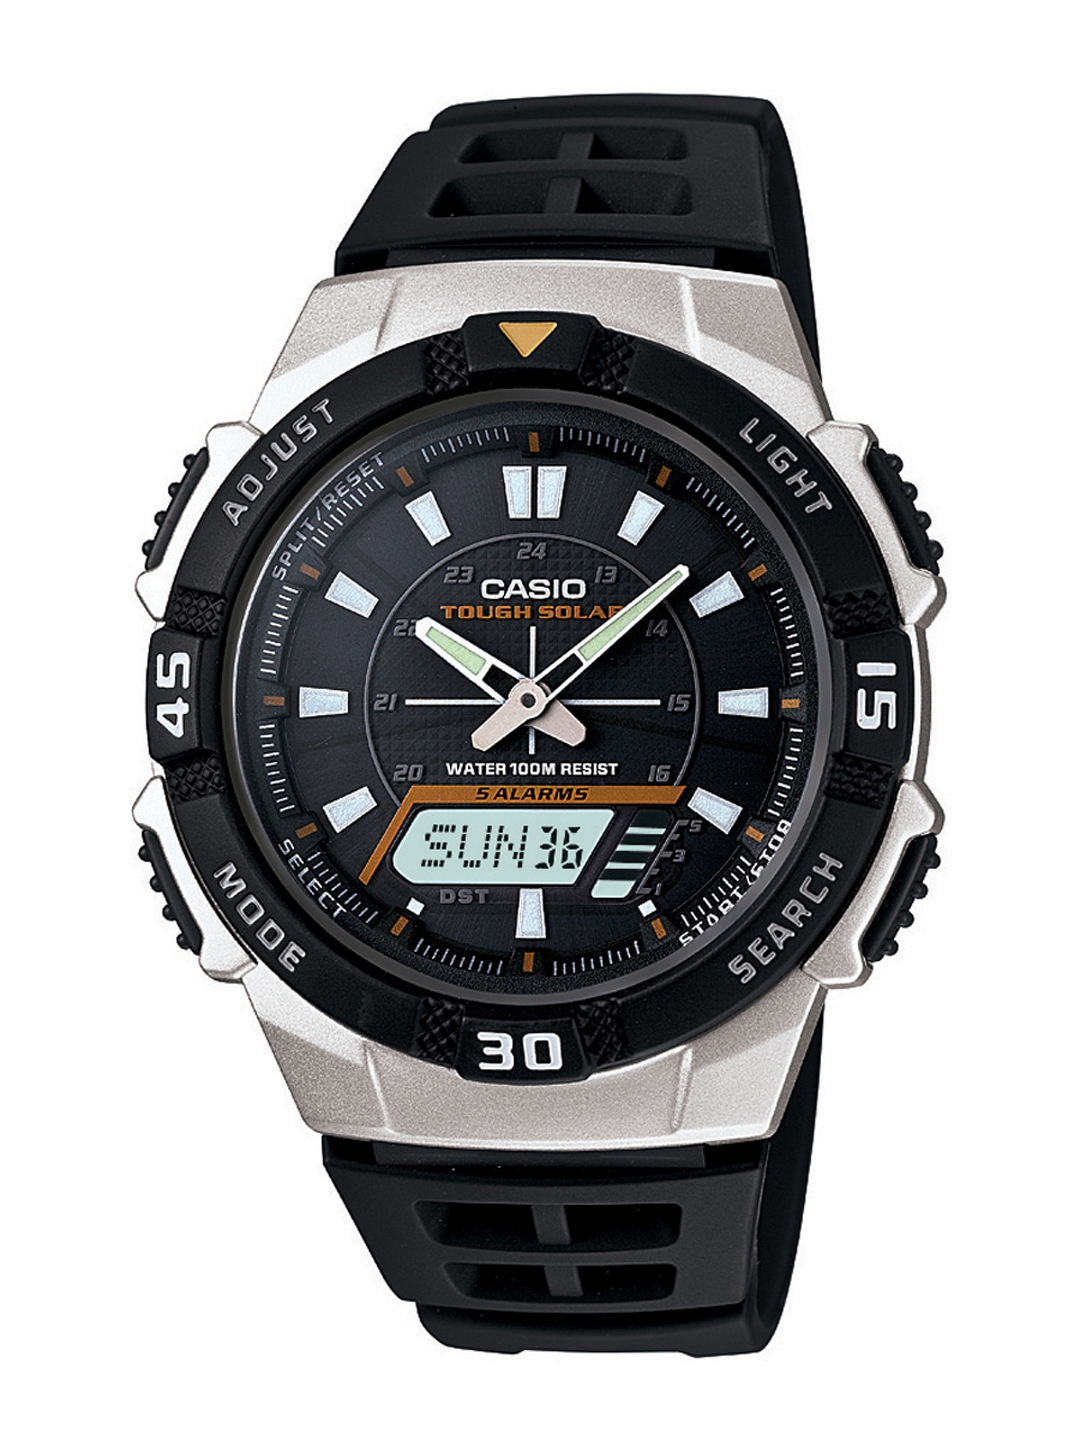 212543424d7 Buy Casio Youth Series Men Analog Digital Watch AQ S800W 1EVDFAD169 ...